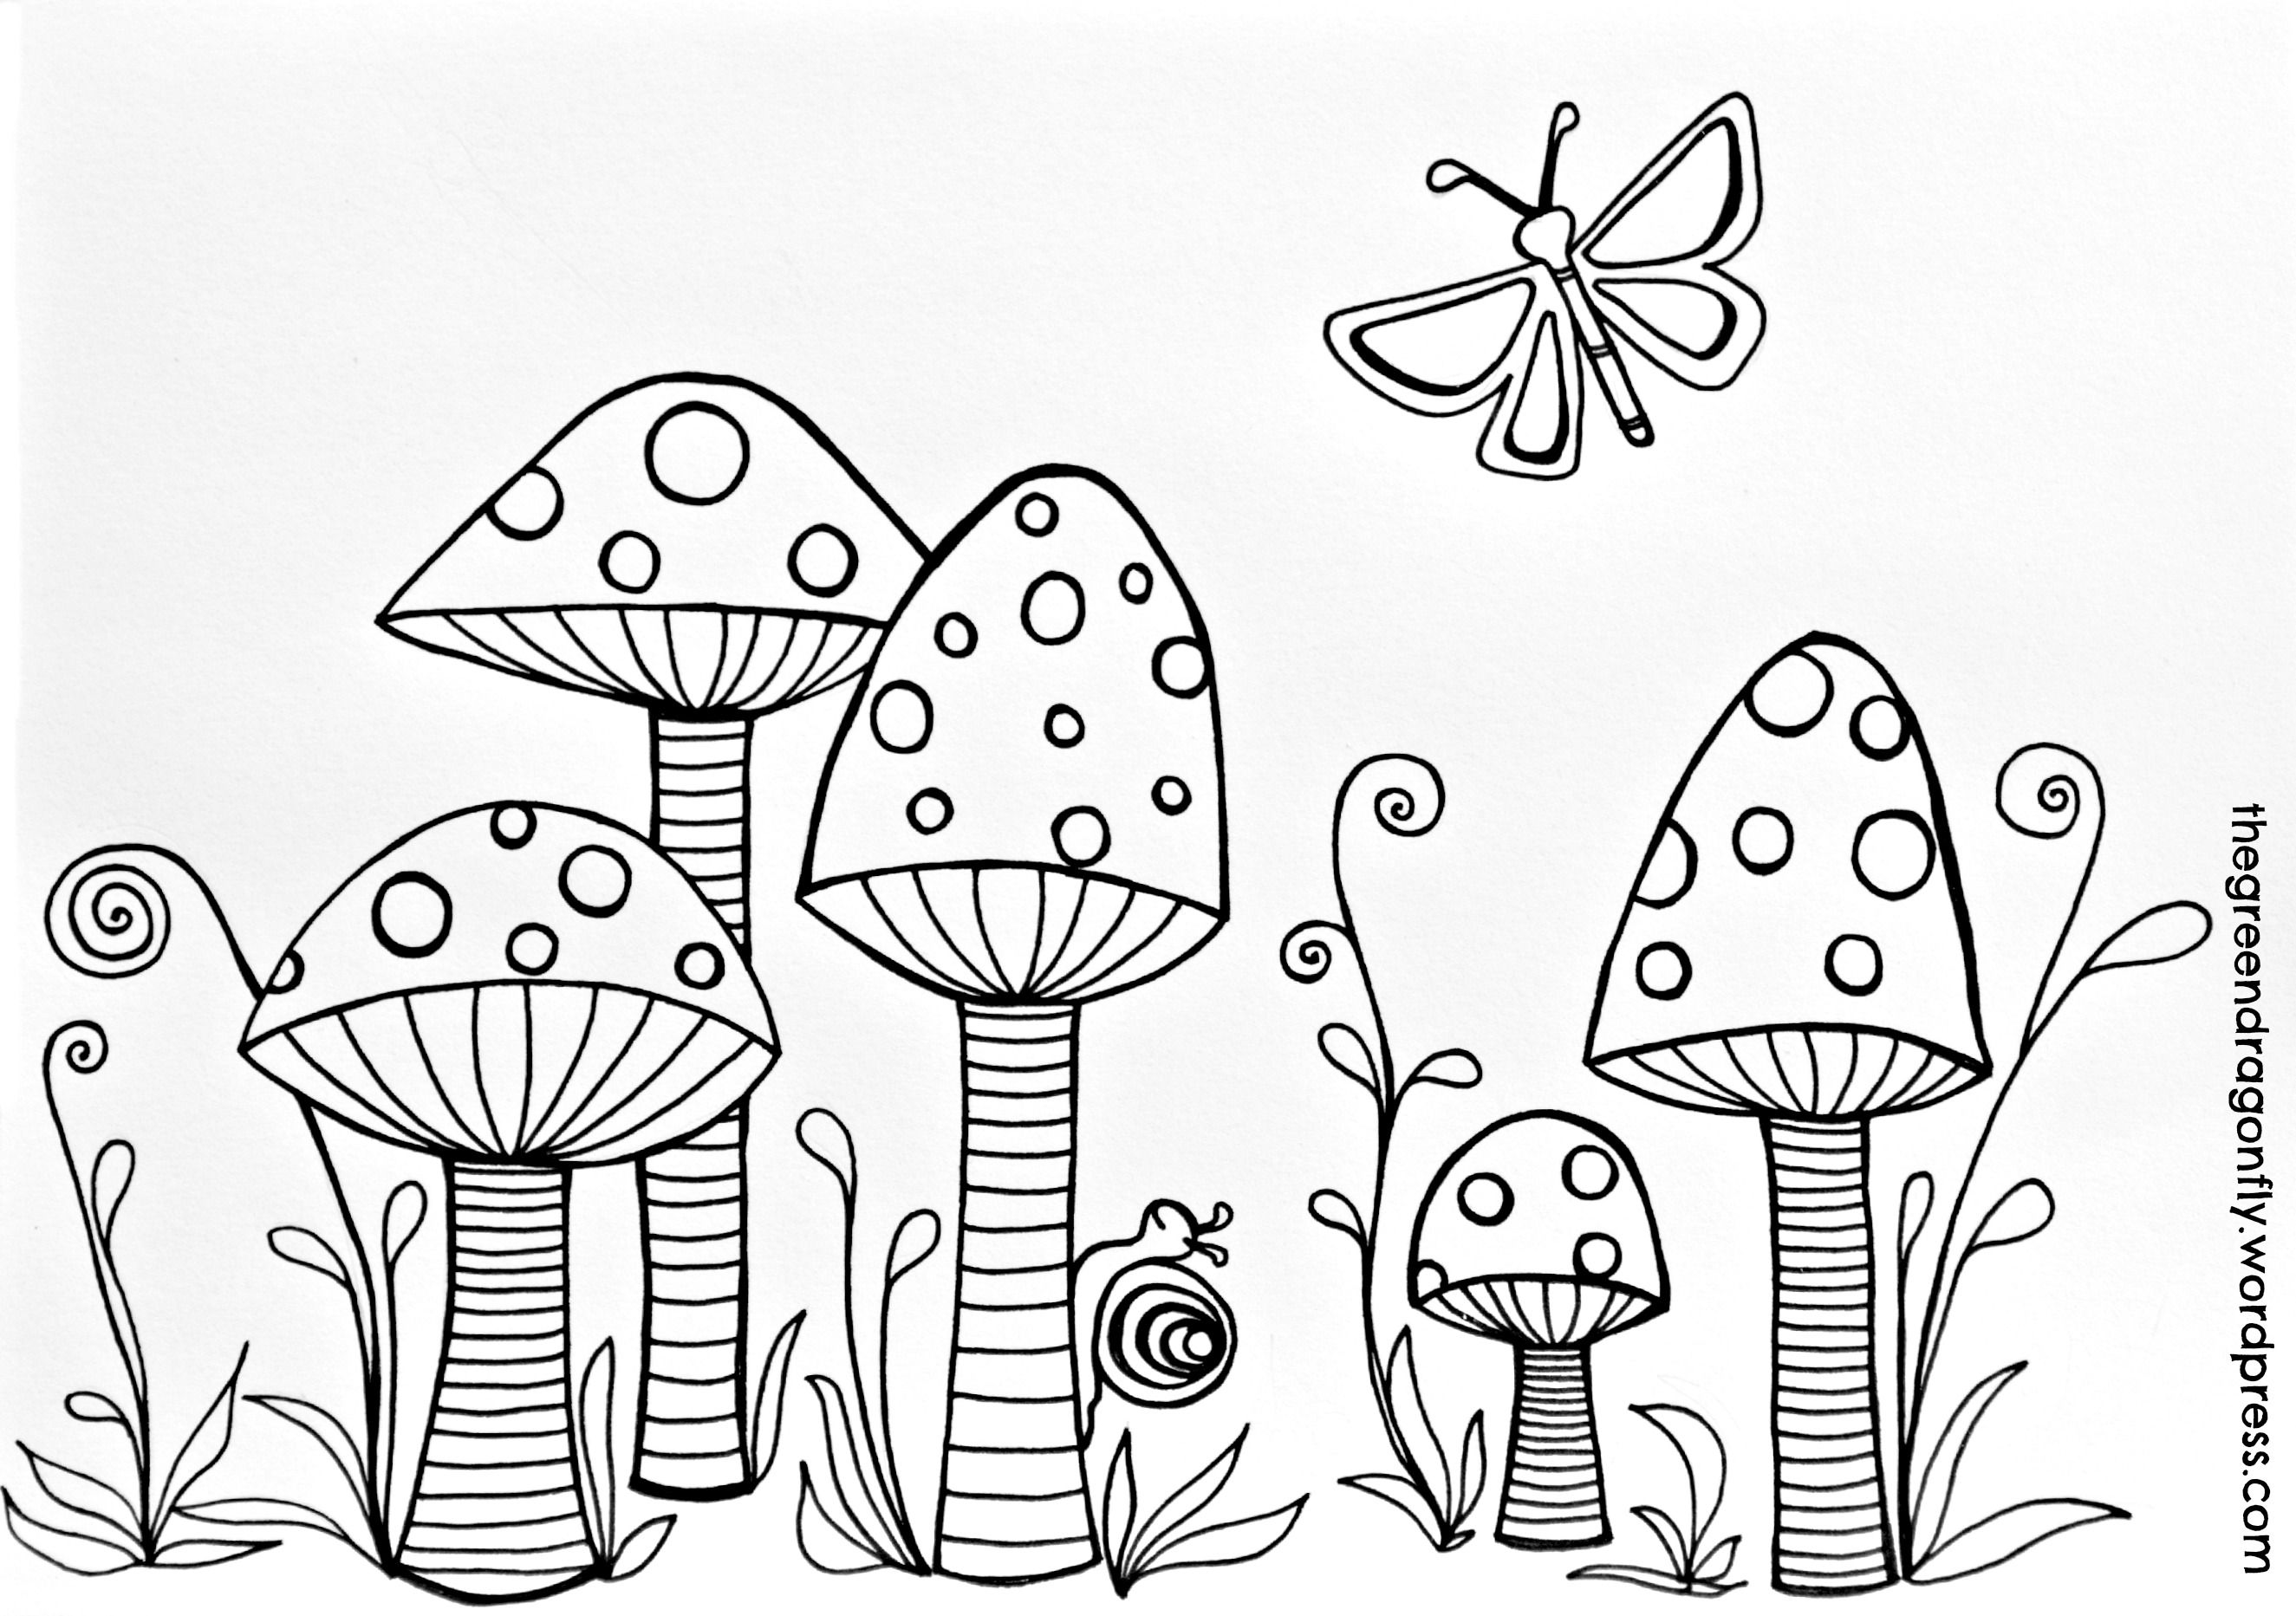 Toadstools coloring page | Doodles, Adult coloring and Coloring books